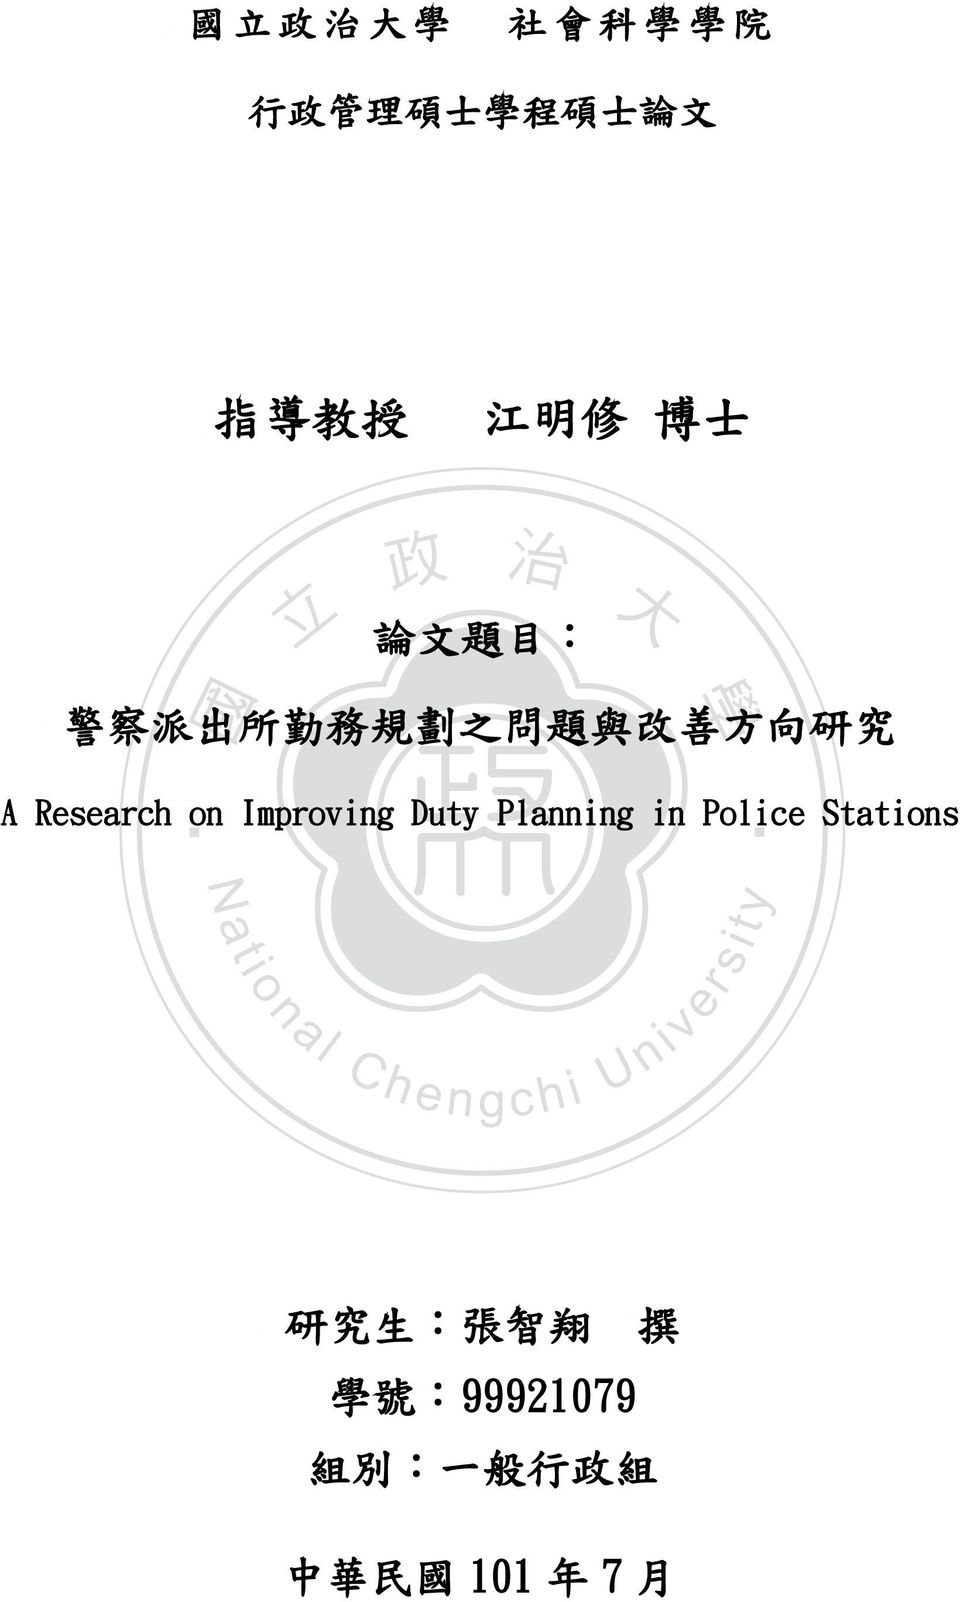 Research on Improving Duty Planning in Police